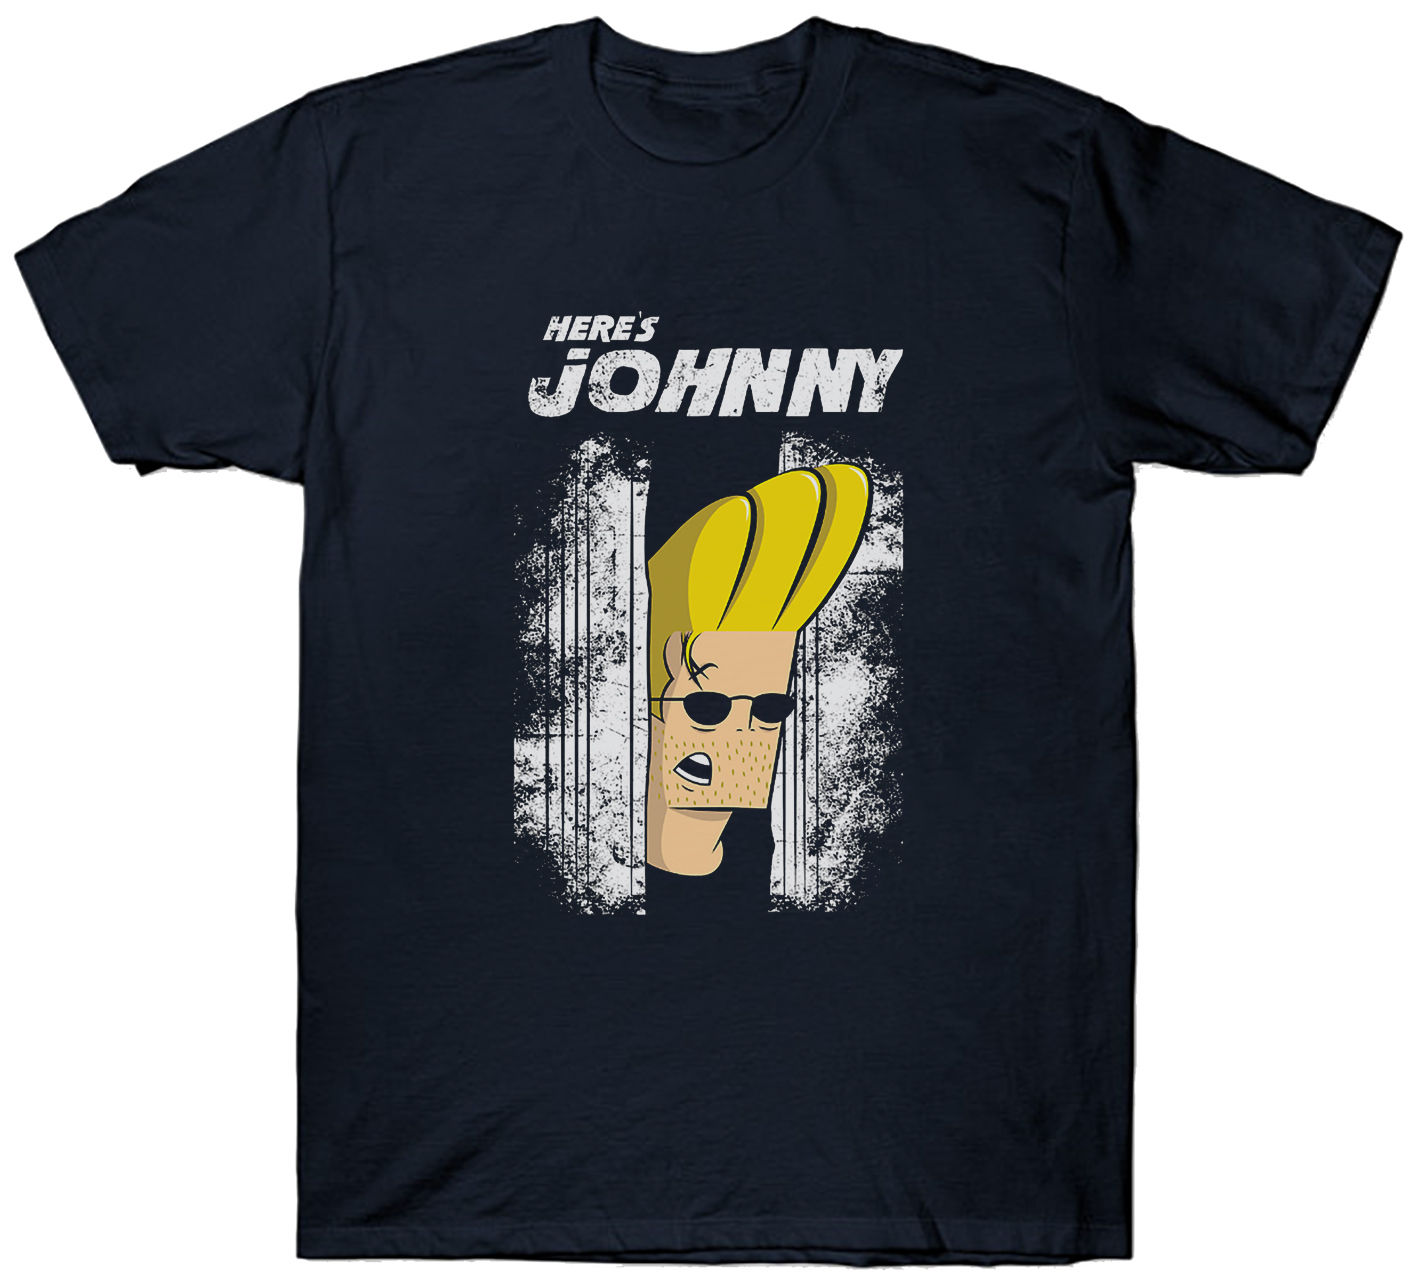 JOHNNY BRAVO T SHIRT HERE'S JOHNNY THE SHINING PARODY PUN JOKE image